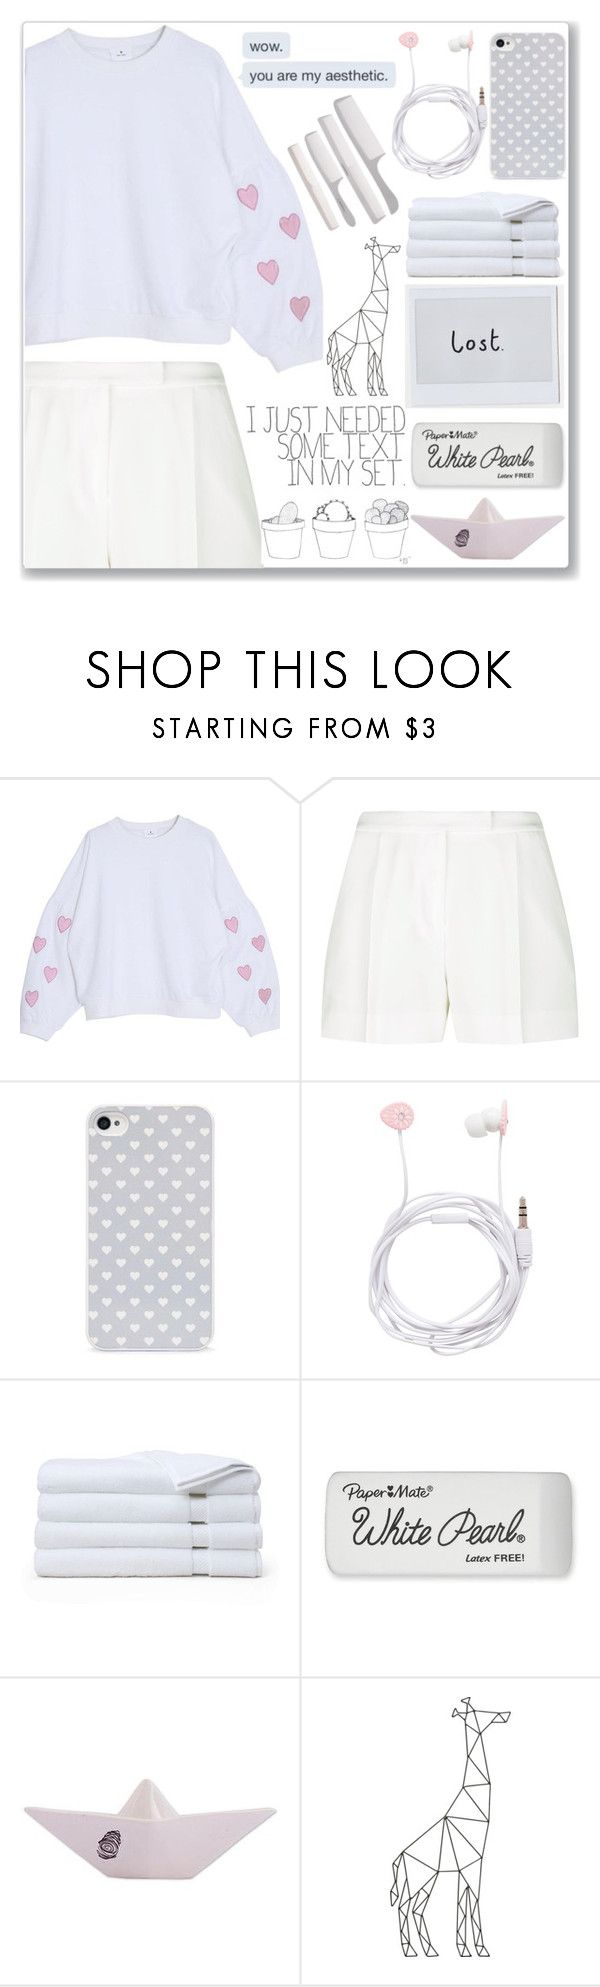 """Secretly Watching Videos Late At Night Without Your Parent Knowing"" by amber-mistry ❤ liked on Polyvore featuring Elie Saab, BlissfulCASE, Forever New, Brooks Brothers, Paper Mate and NOVICA"